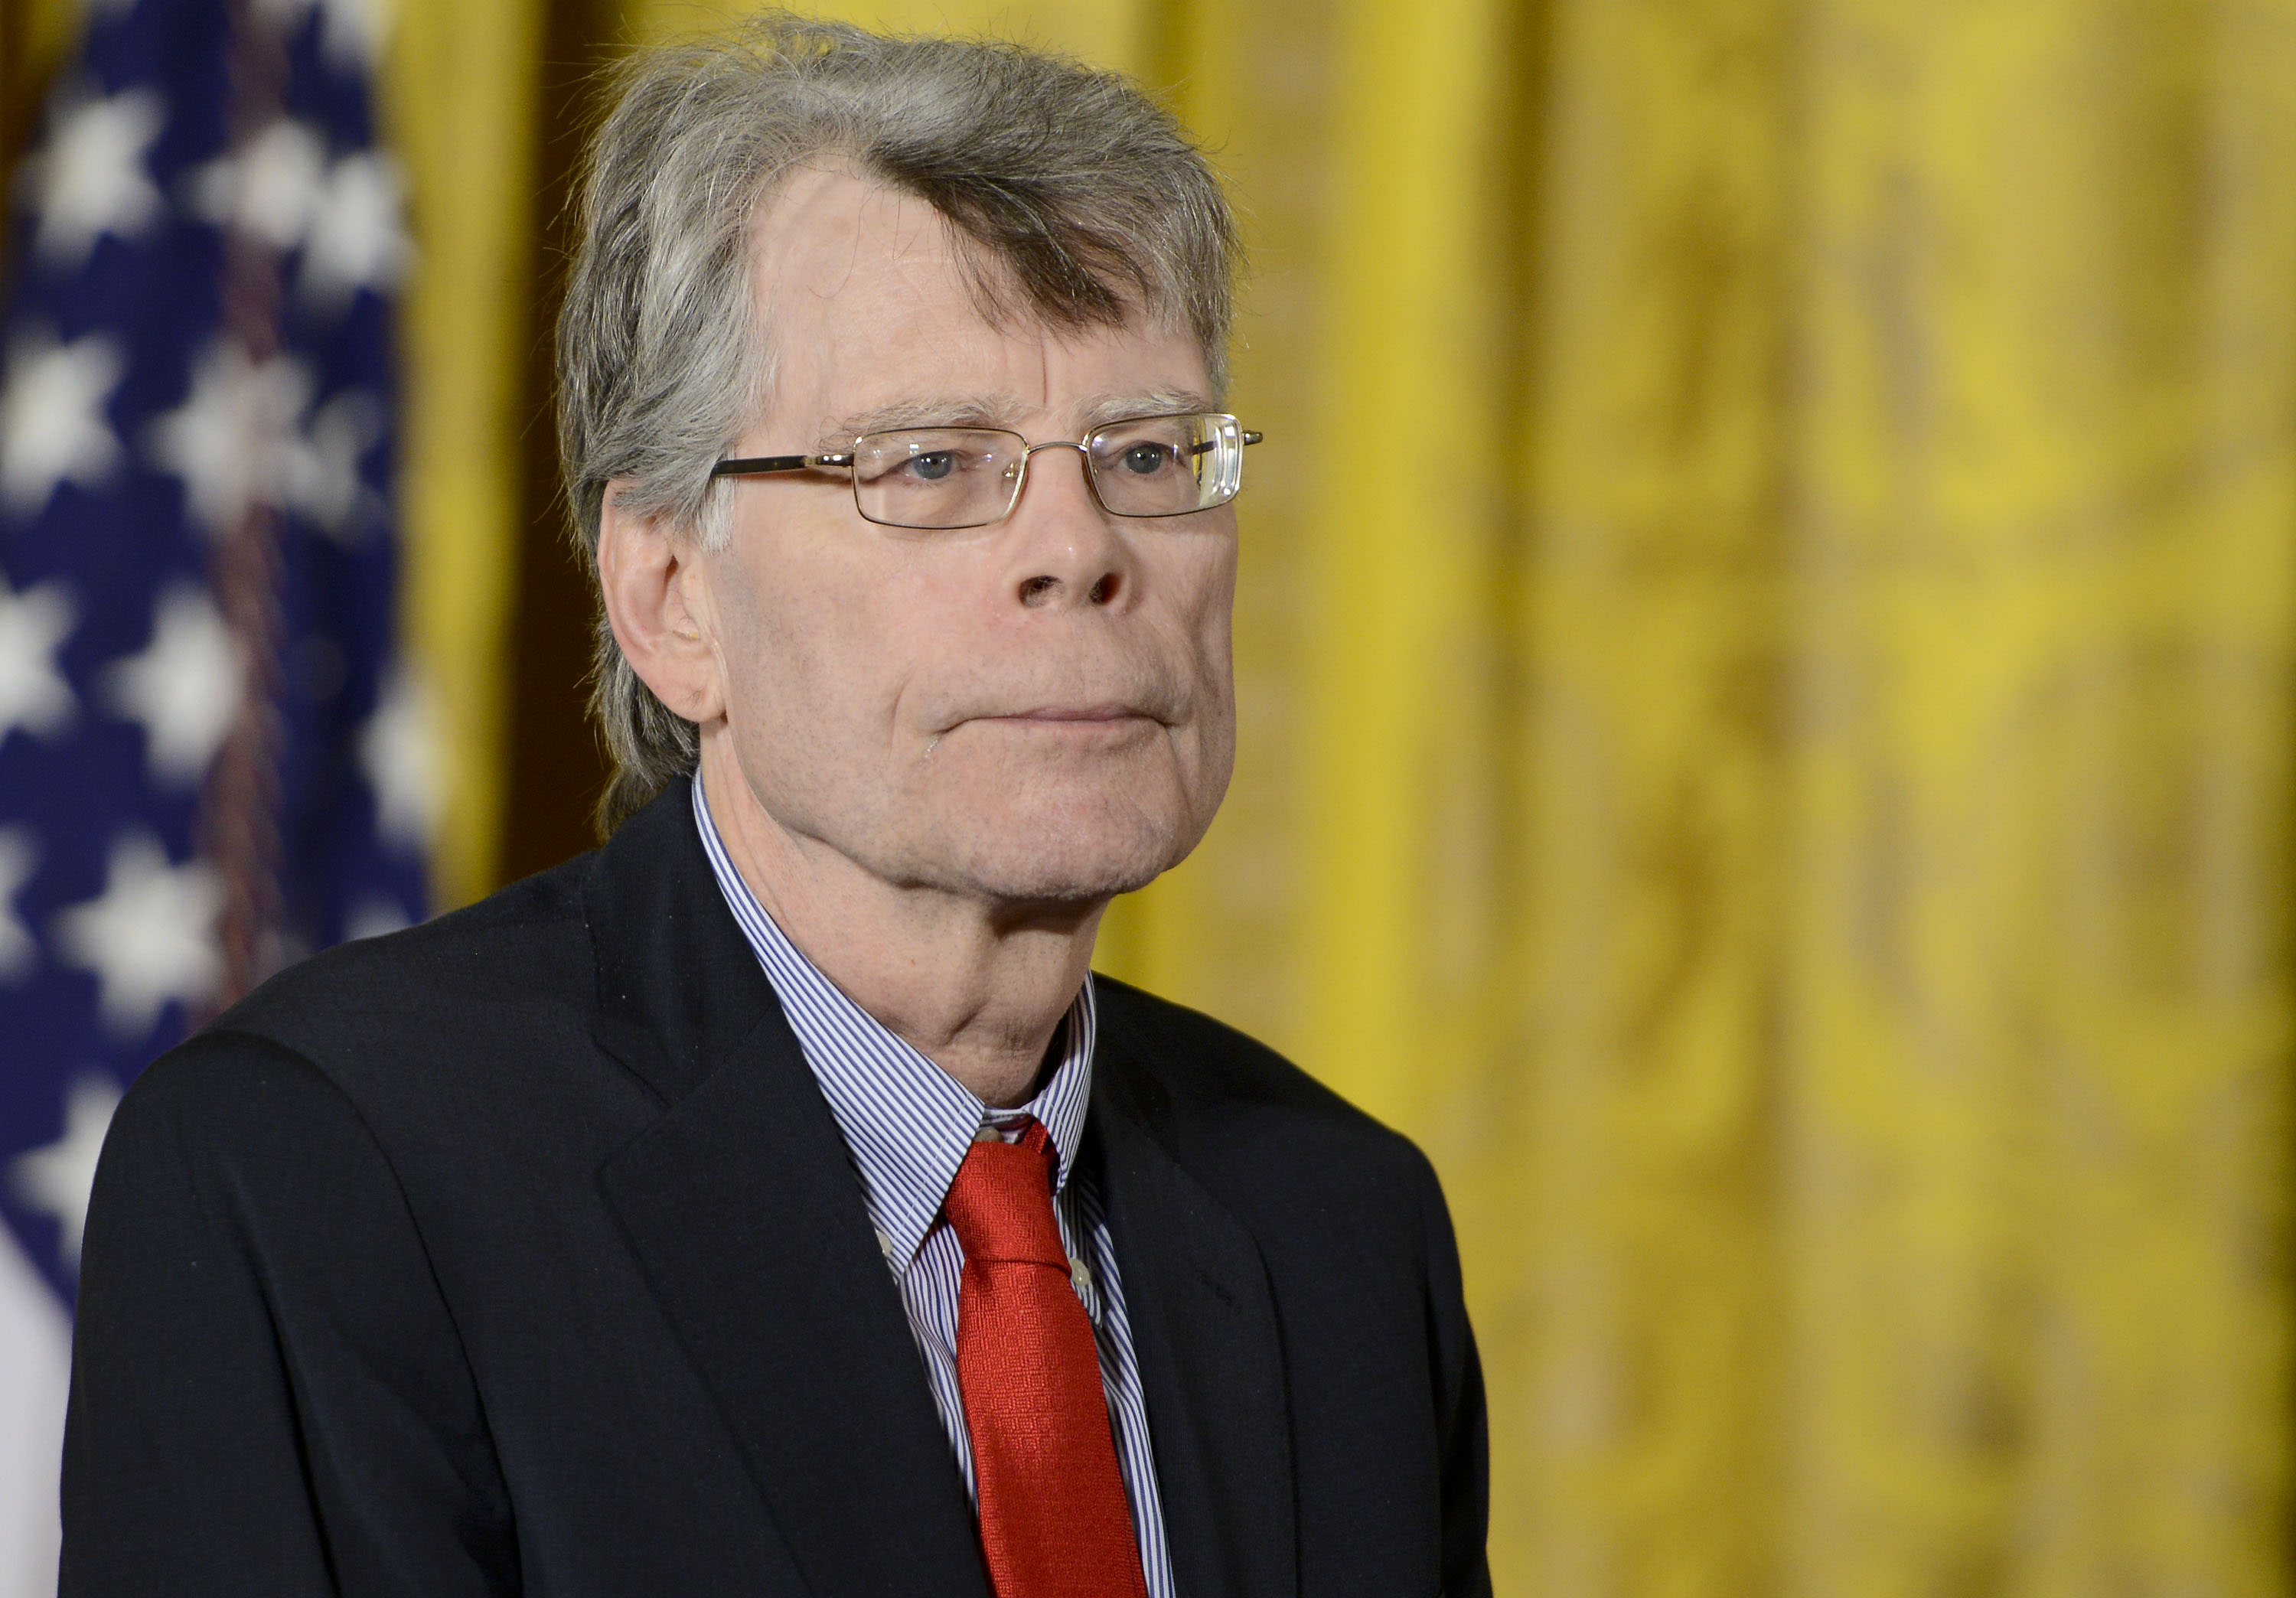 Stephen King says the Oscars are 'rigged in favor of white people' in new op-ed